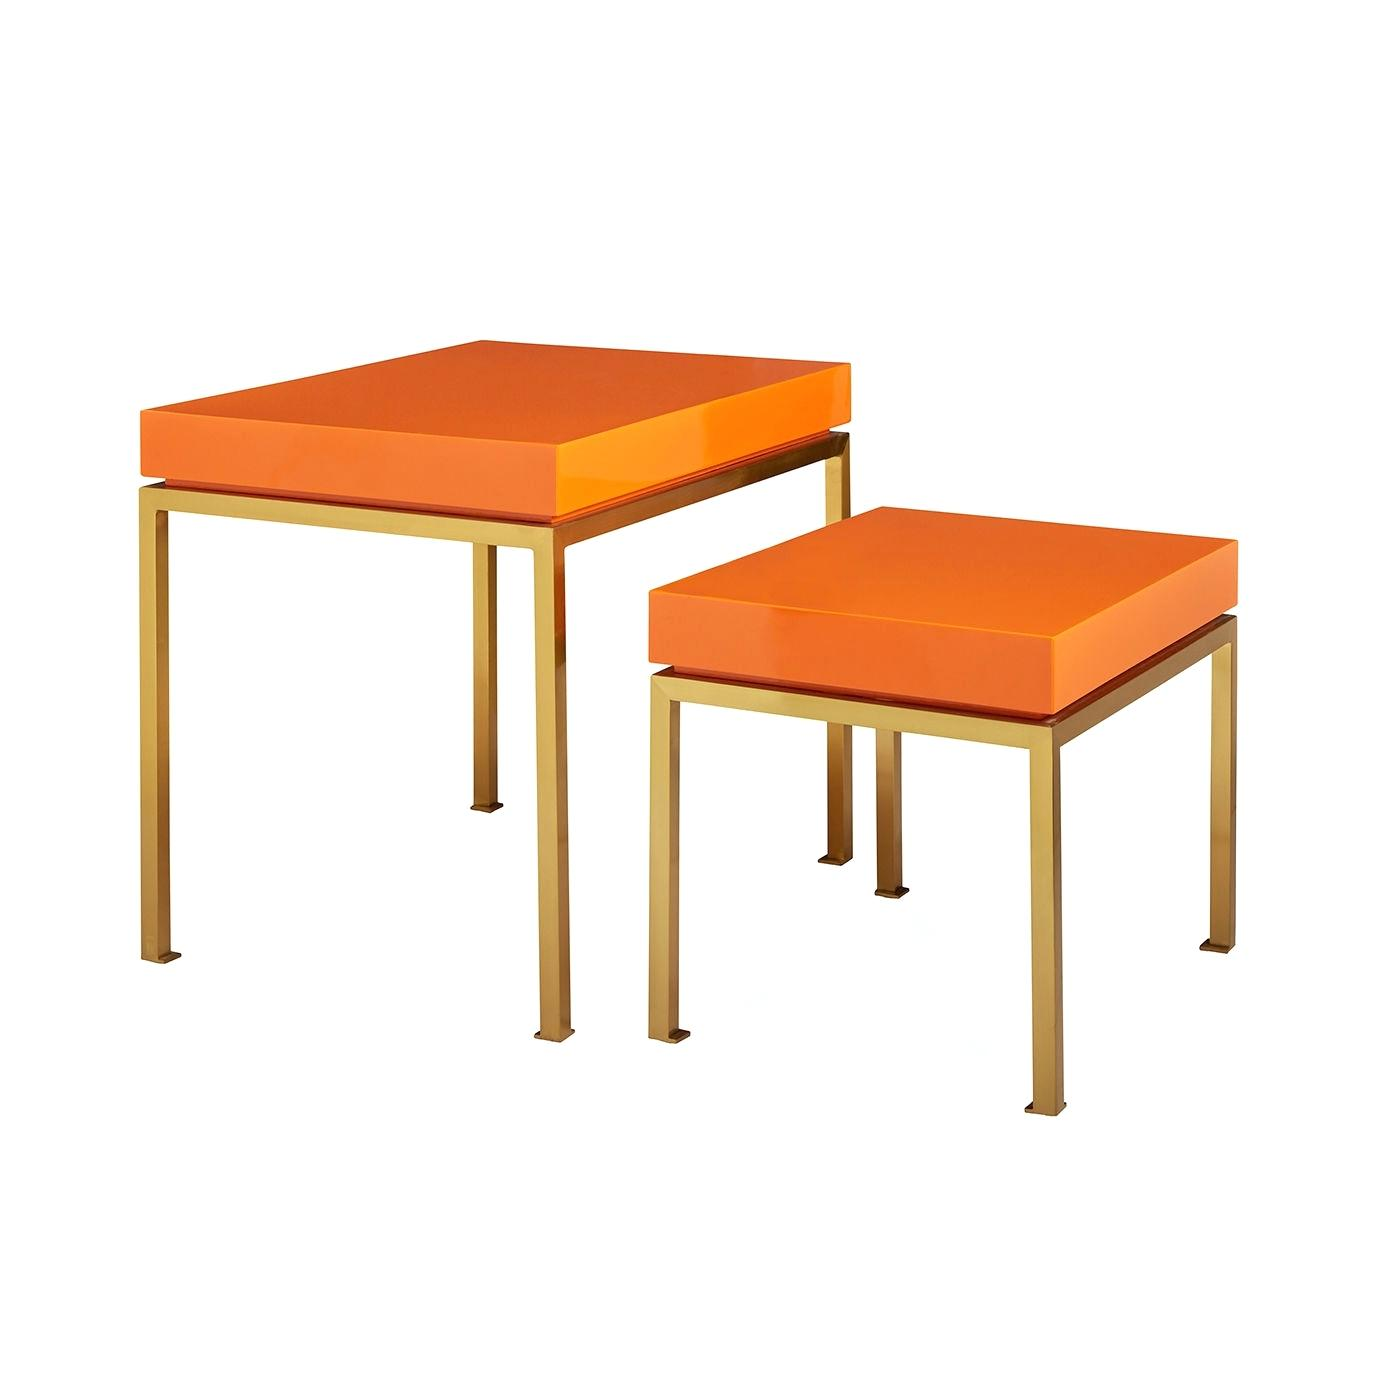 orange accent table hidden treasures chest with tall side alt outdoor small white round and chairs wrought iron patio coffee front porch furniture teal cabinet wood dining legs